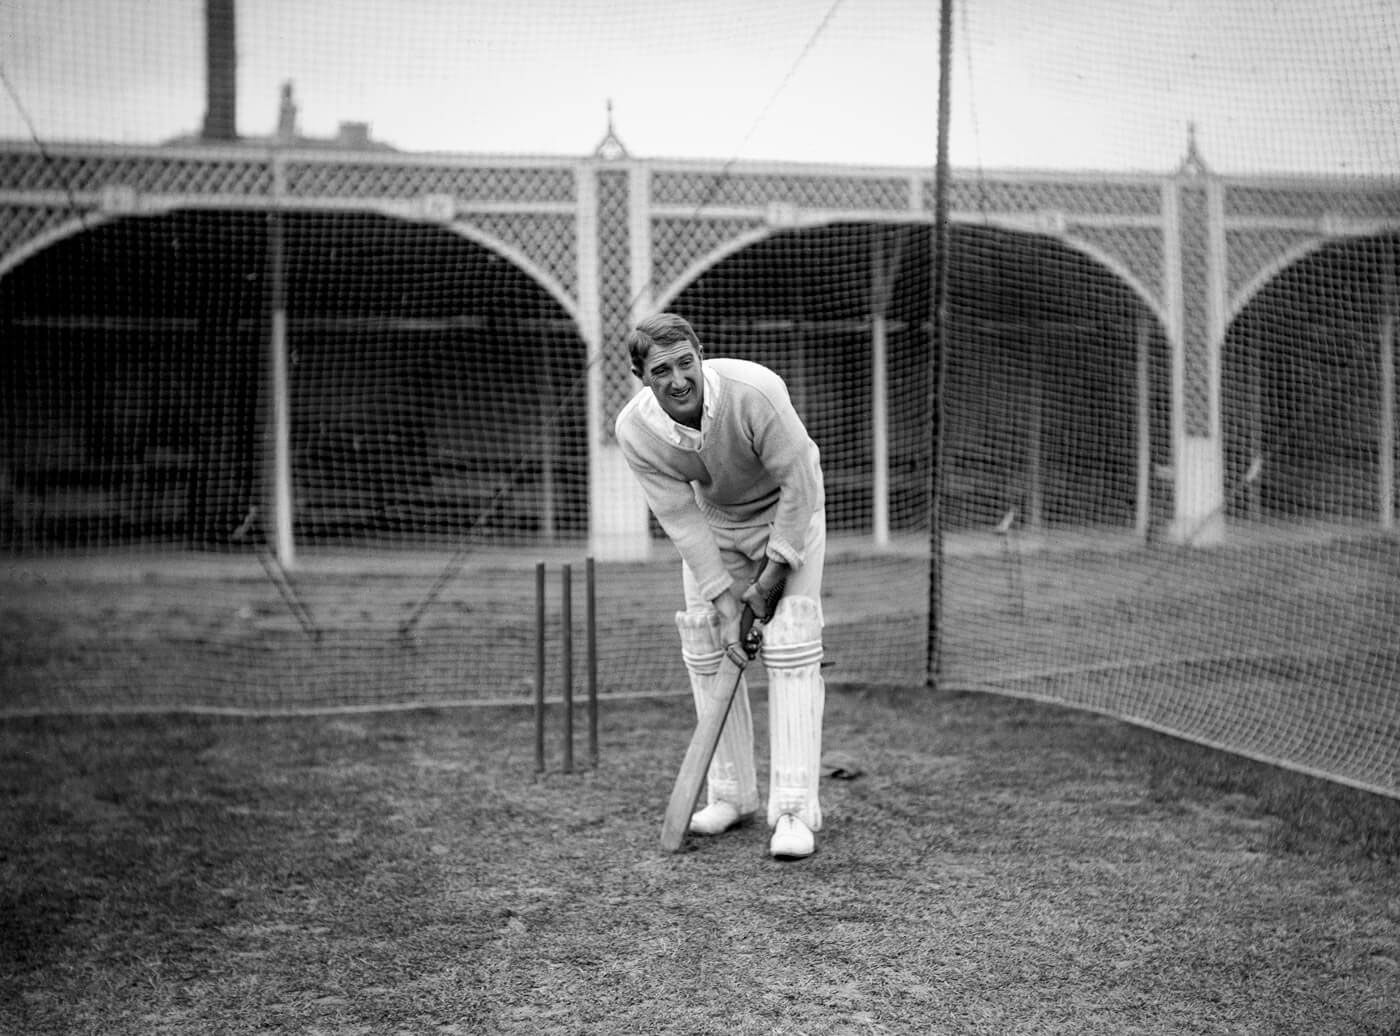 Aubrey Faulkner bats at the Lord's nets